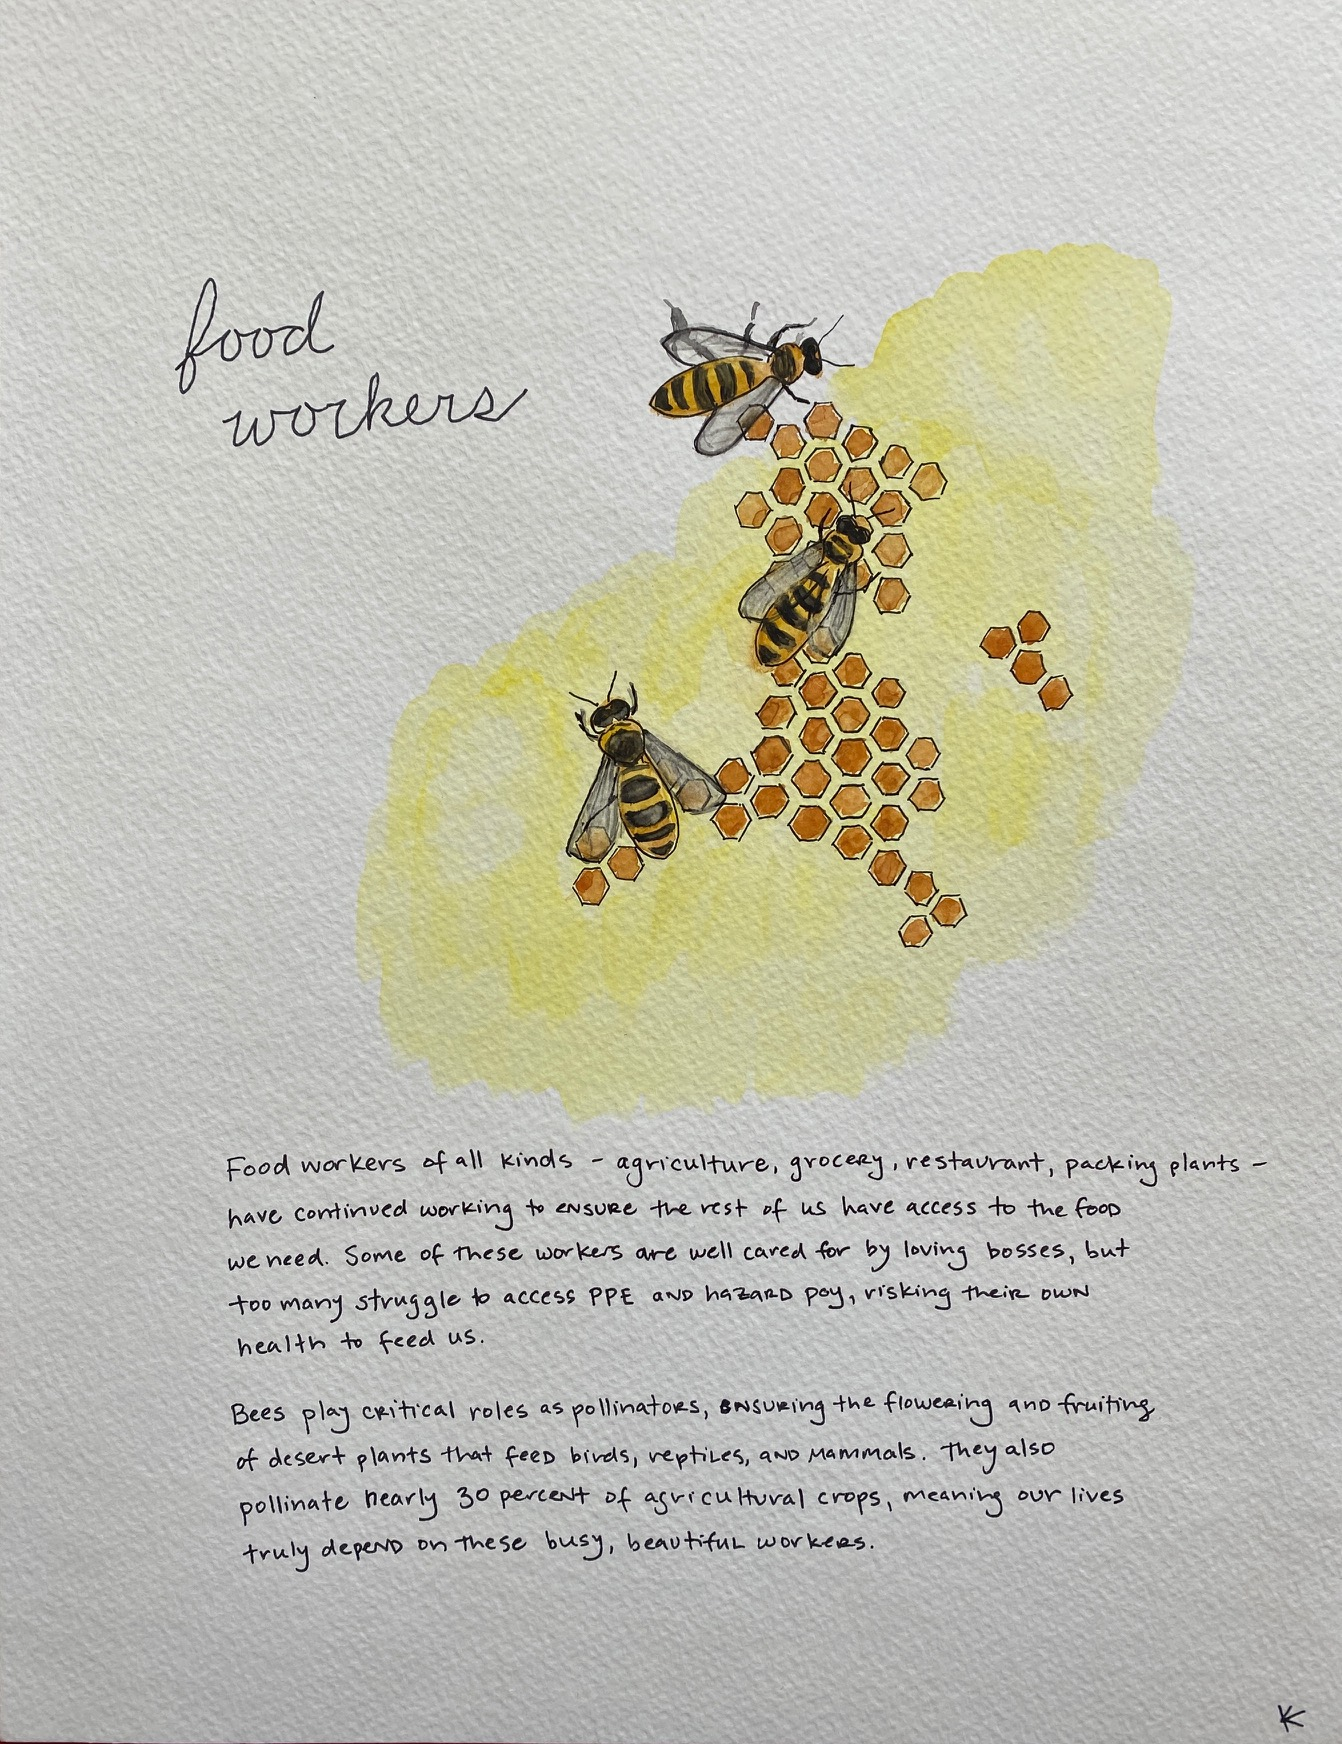 three bees with honeycomb with text that reads: Food workers of all kinds - agriculture, grocery, restaurant, packing plants - have continued working to ensure the rest of us have access to the food we need. Some of these workers are well cared for by loving bosses, but too many struggle to access PPE and hazard pay, risking their own health to feed us. Bees play critical roles as pollinators, ensuring the flowering and fruiting of desert plants that feed birds, reptiles, and mammals. They also pollinate nearly 30 percent of agricultural crops, meaning our lives truly depend on these busy, beautiful workers.